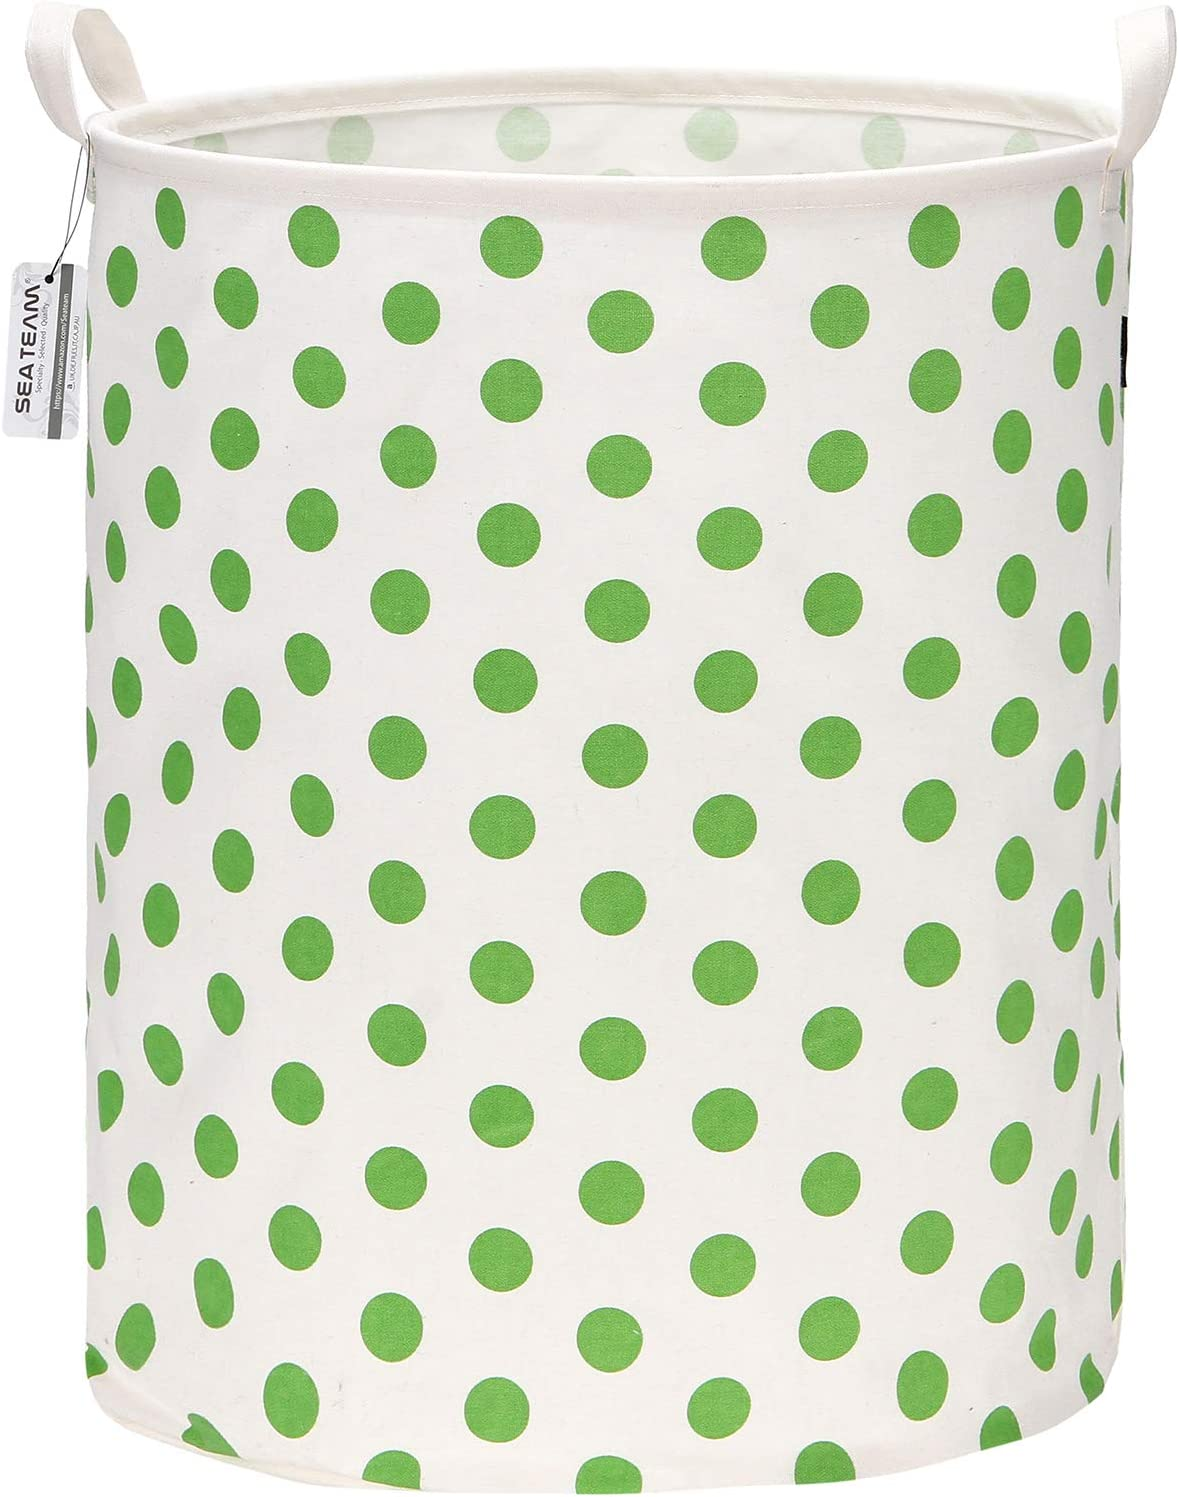 "Sea Team 19.7 Inches Large Sized Waterproof Coating Ramie Cotton Fabric Folding Laundry Hamper Bucket Cylindric Burlap Canvas Storage Basket with Stylish Polka Dot Design (19.7"", Green)"